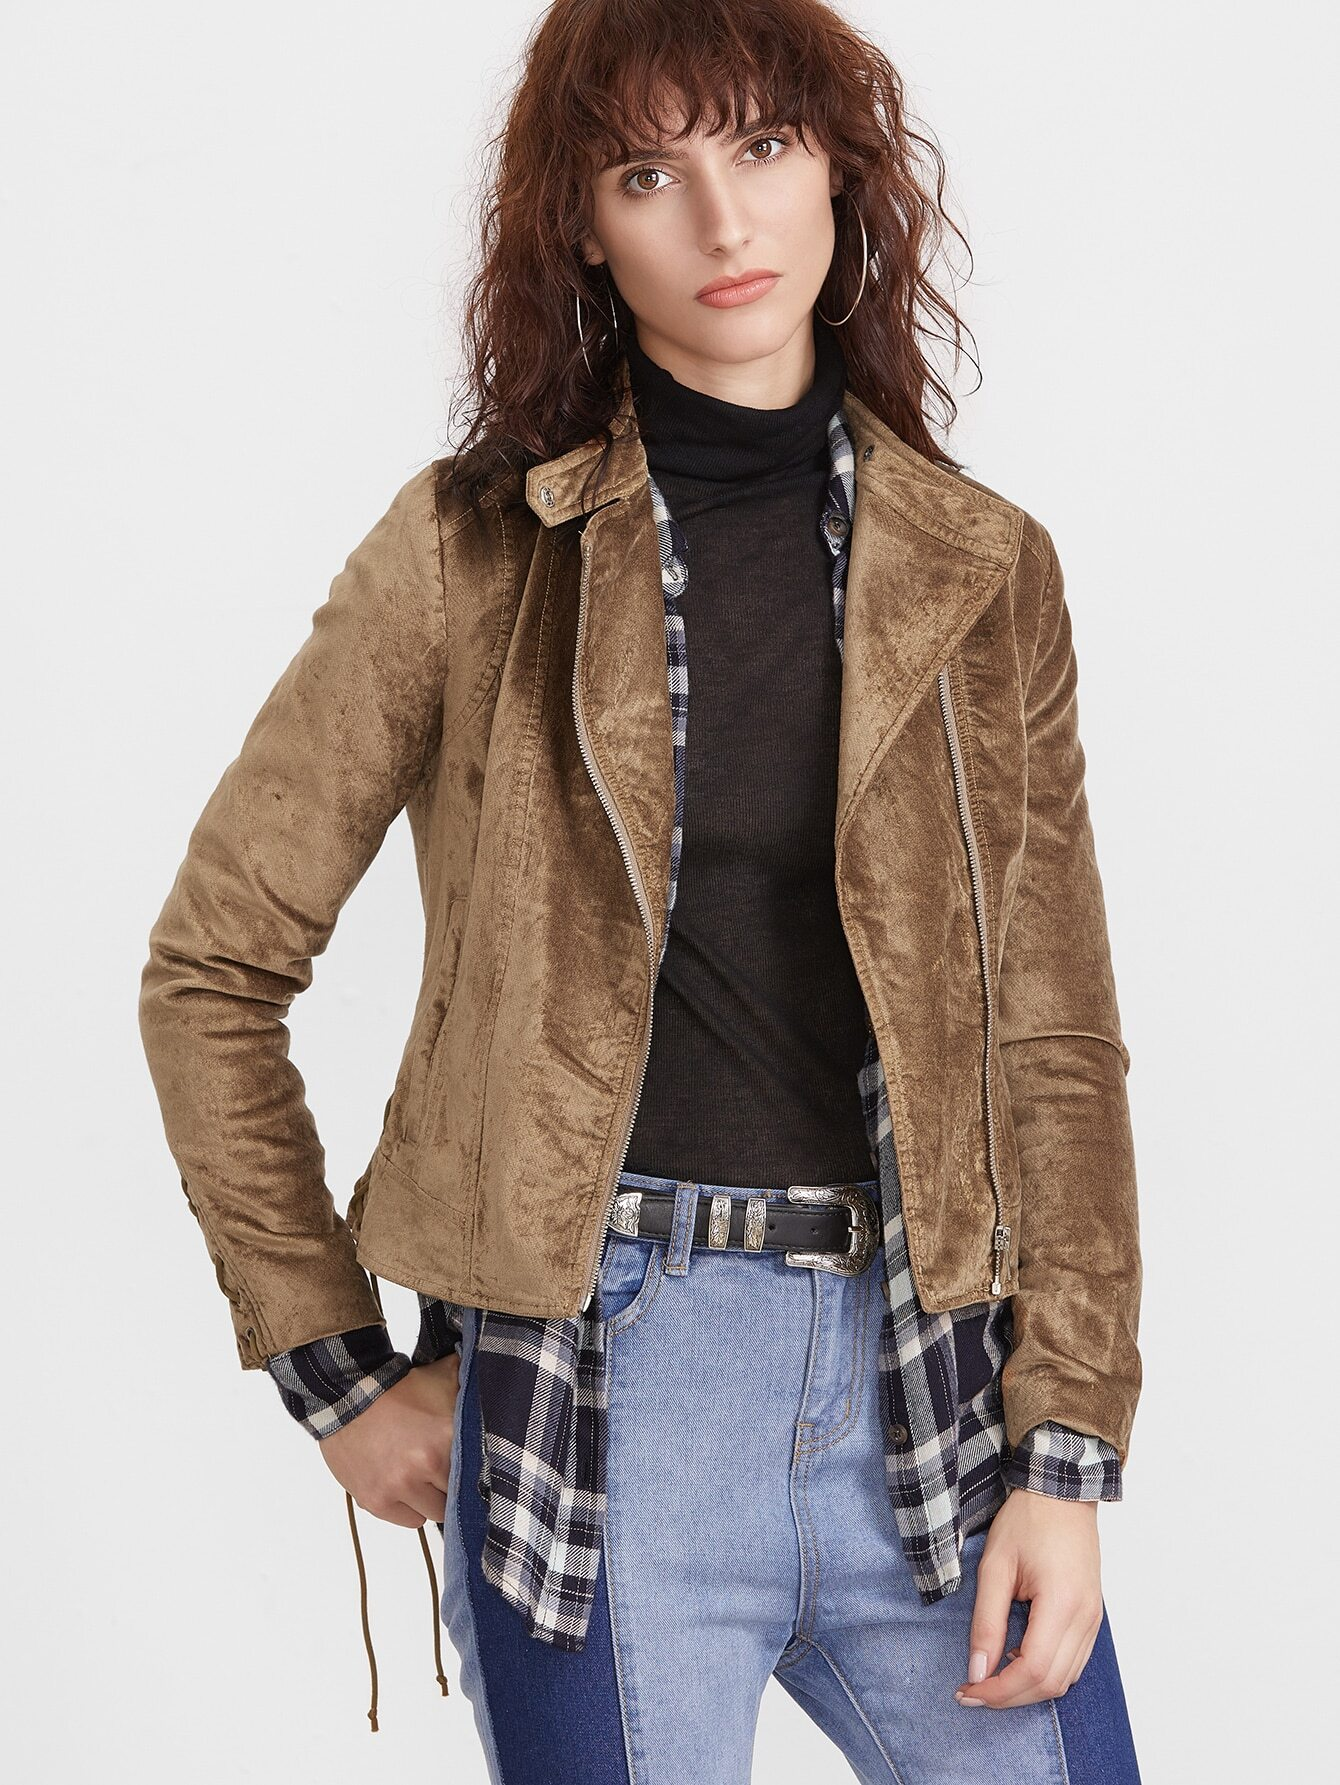 Coffee Stand Collar Asymmetric Zip Jacket With Lace Up DetailCoffee Stand Collar Asymmetric Zip Jacket With Lace Up Detail<br><br>color: Coffee<br>size: L,M,S,XS